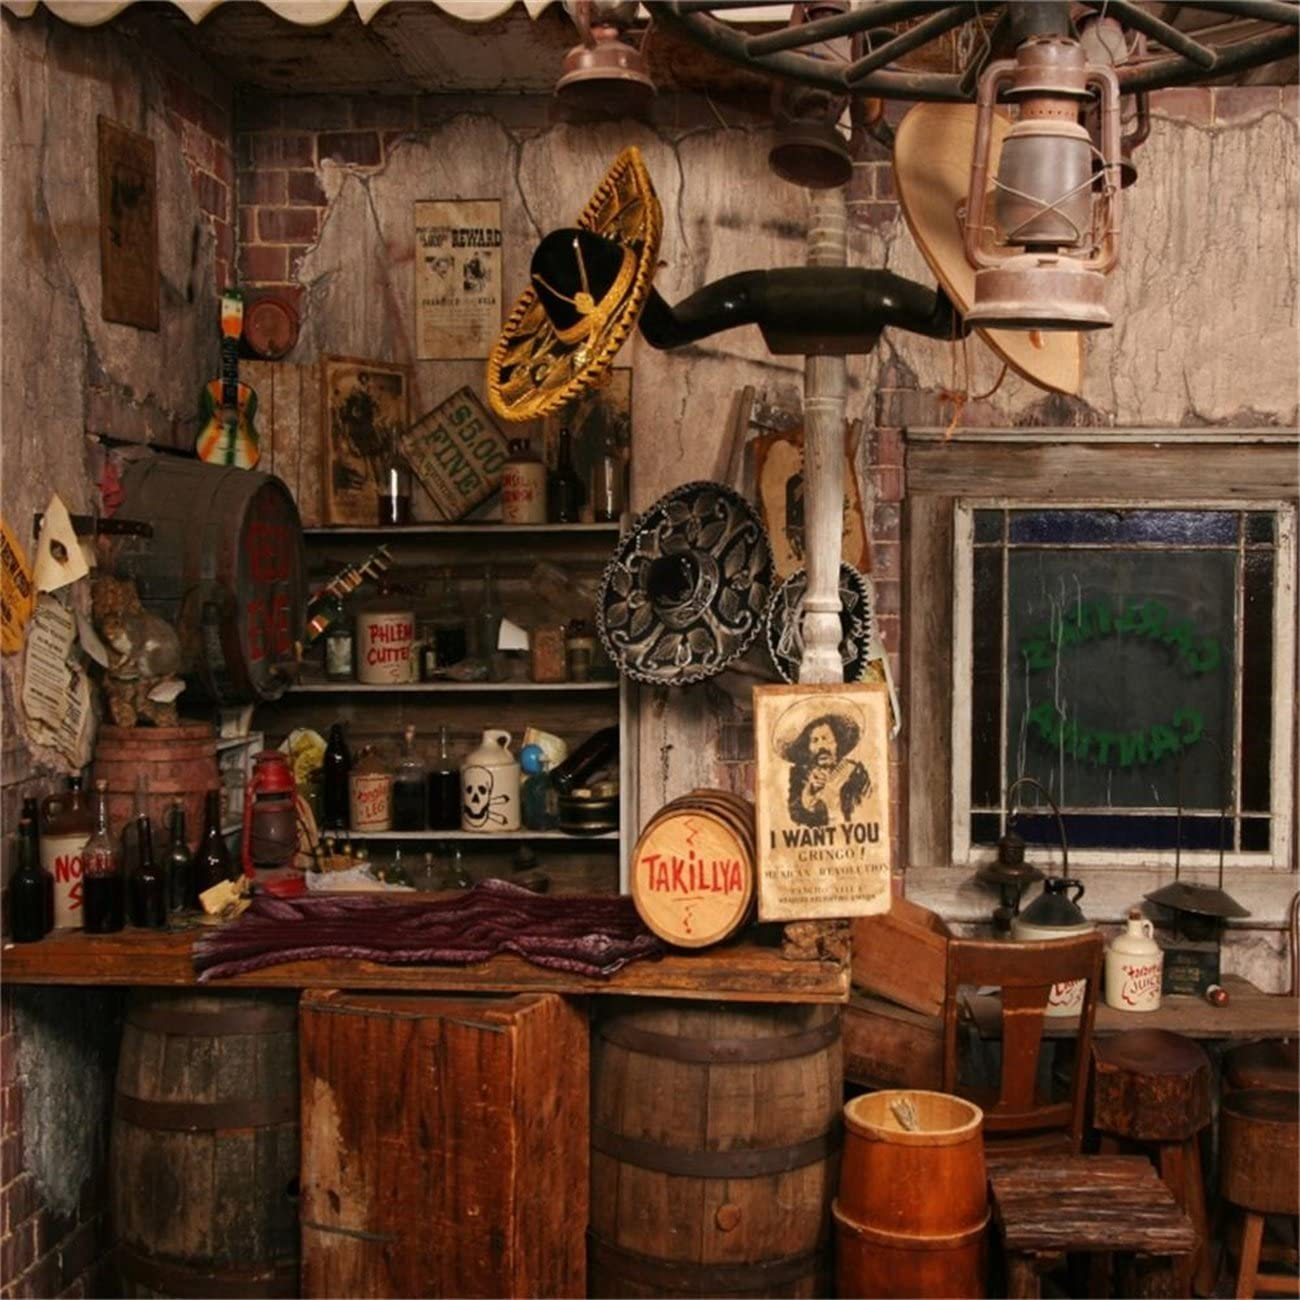 Western Frontier Town 15x8ft Vinyl Photography Backdrop General Store Saloon Old Hotel Stable Cowboy Party Background Studio Portraits Shoot Photo Prop Portraits Shoot Back Drop